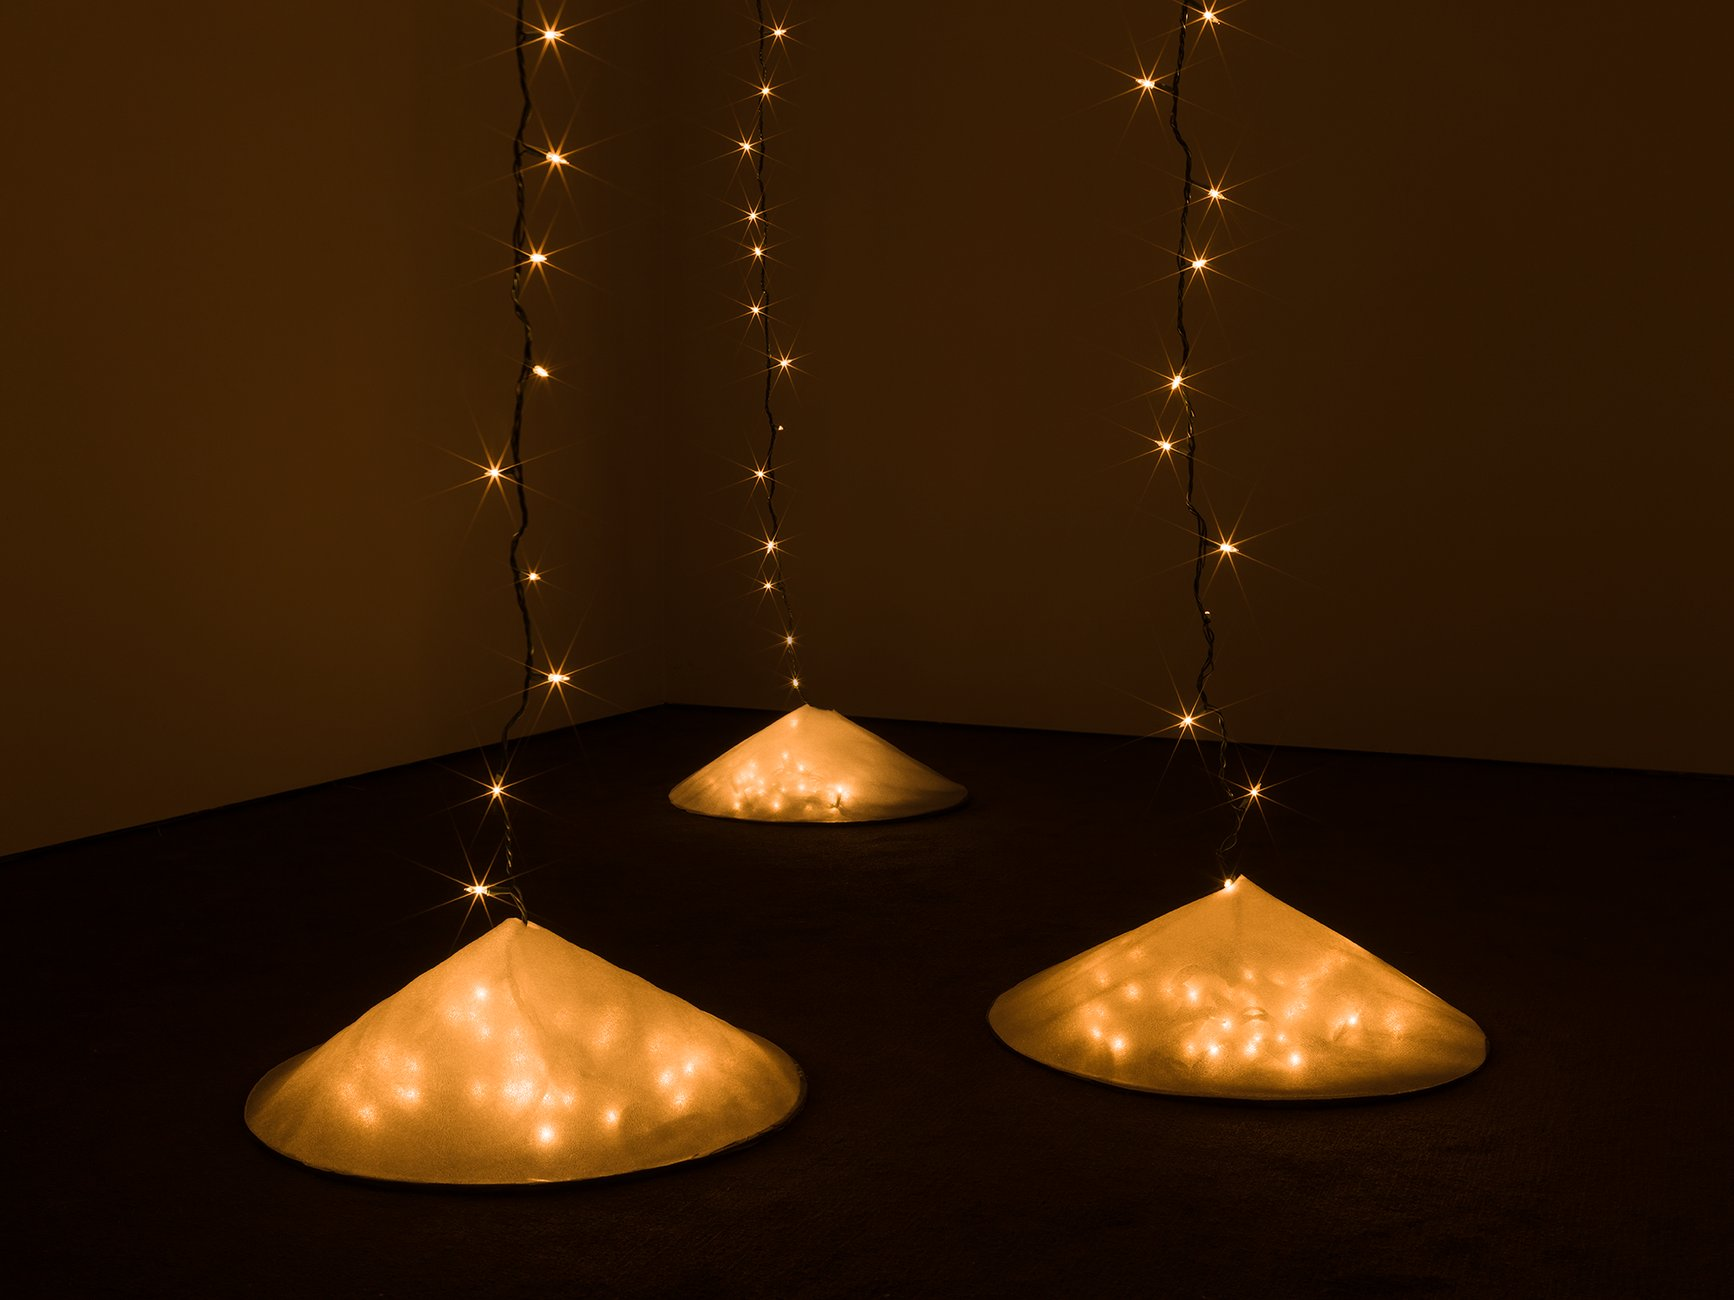 A dark room with Christmas lights, Eno, Soundtracks